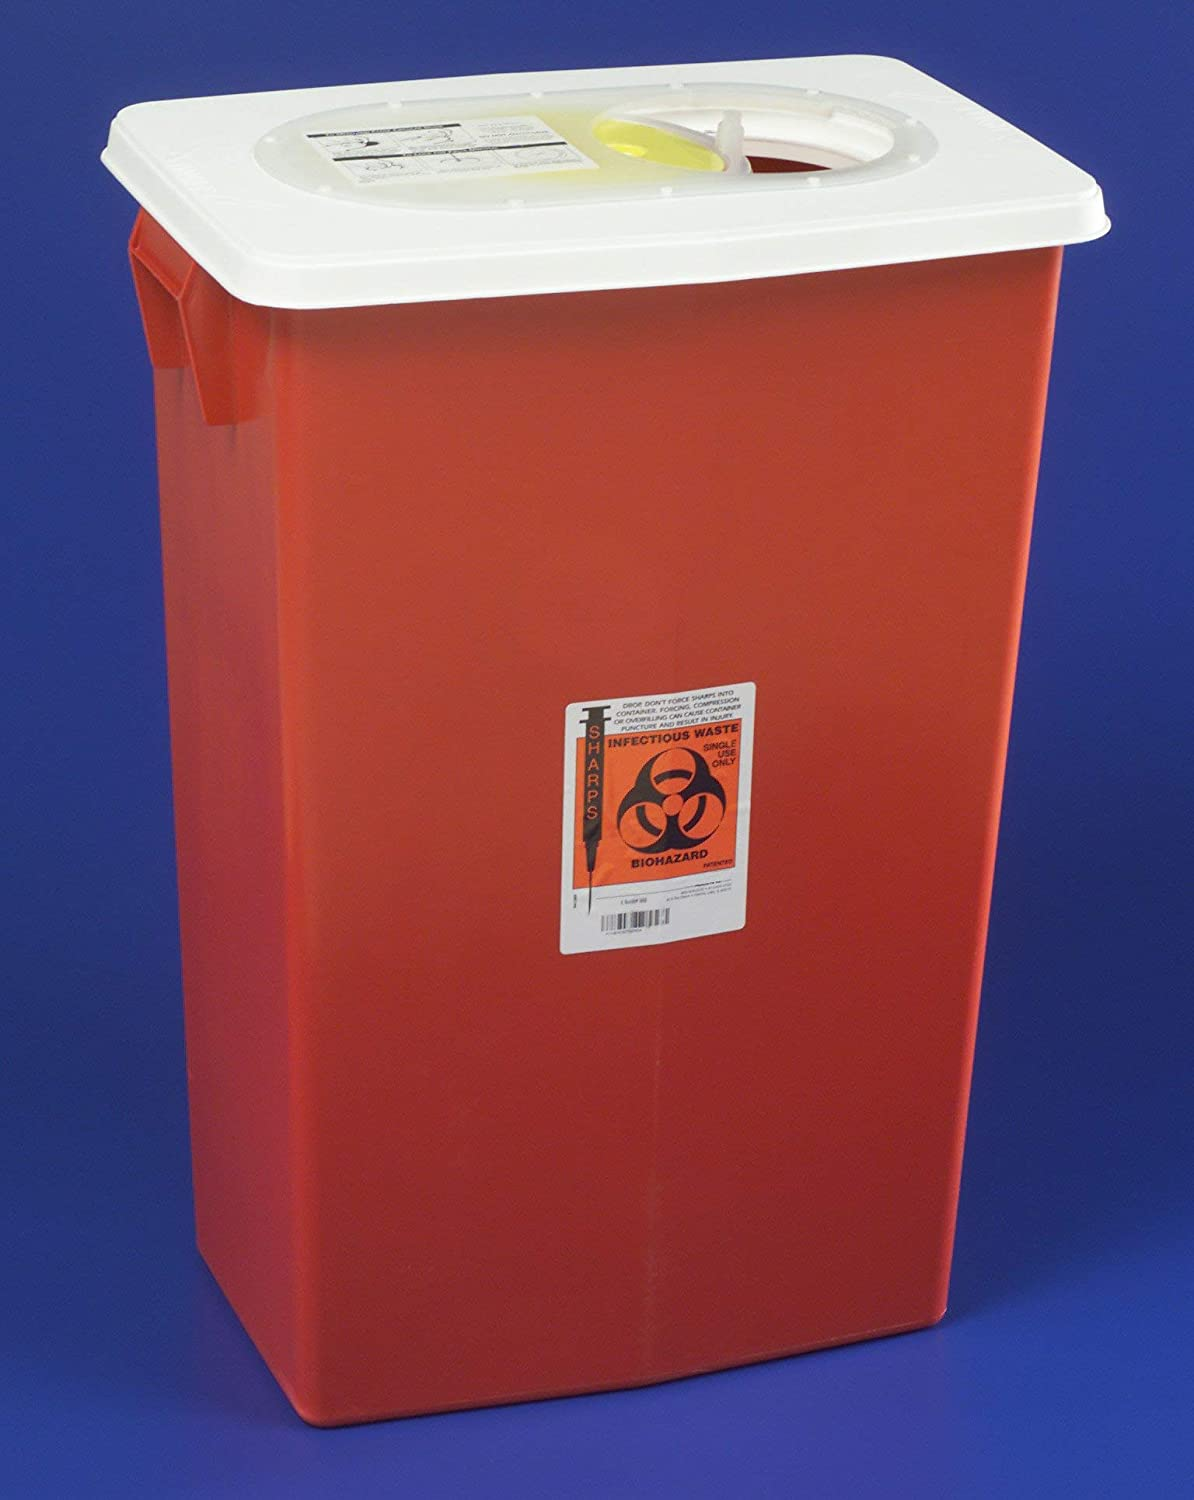 SharpSafety Sharps Container 1-Piece 26 H X 18-1/4 W X 12-3/4 D Inch 18 Gallon Red Hinged Lid, 8998 - Case of 5